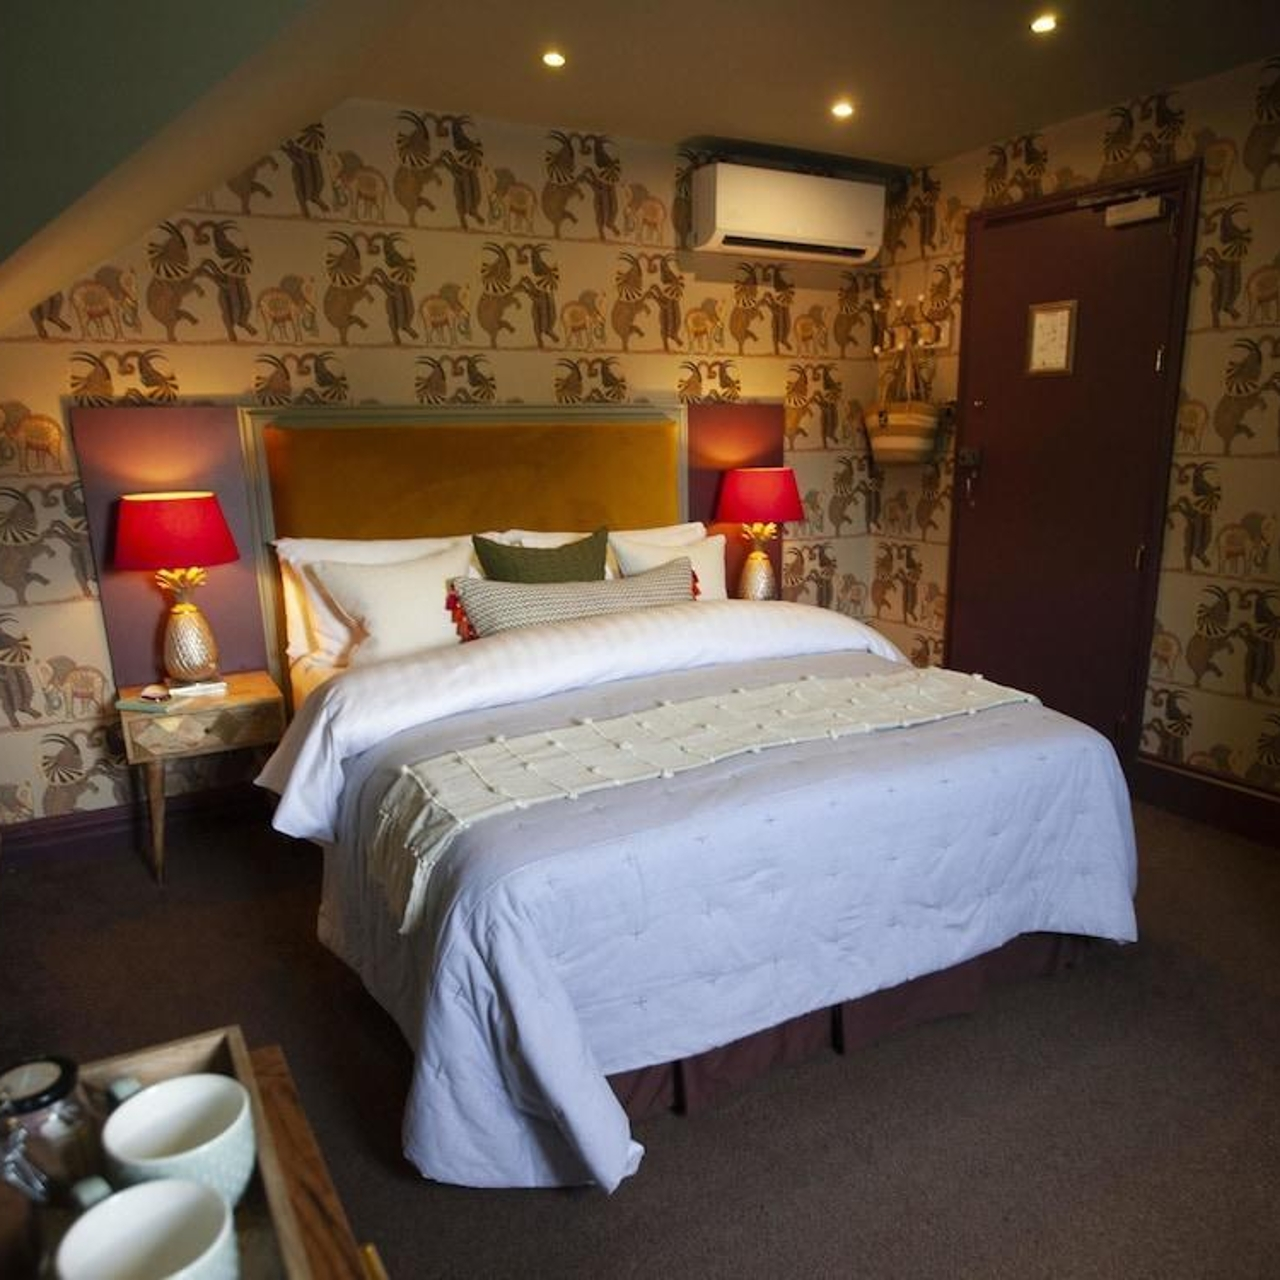 The Chocolate Boutique Hotel 3 Hrs Star Hotel In Bournemouth England